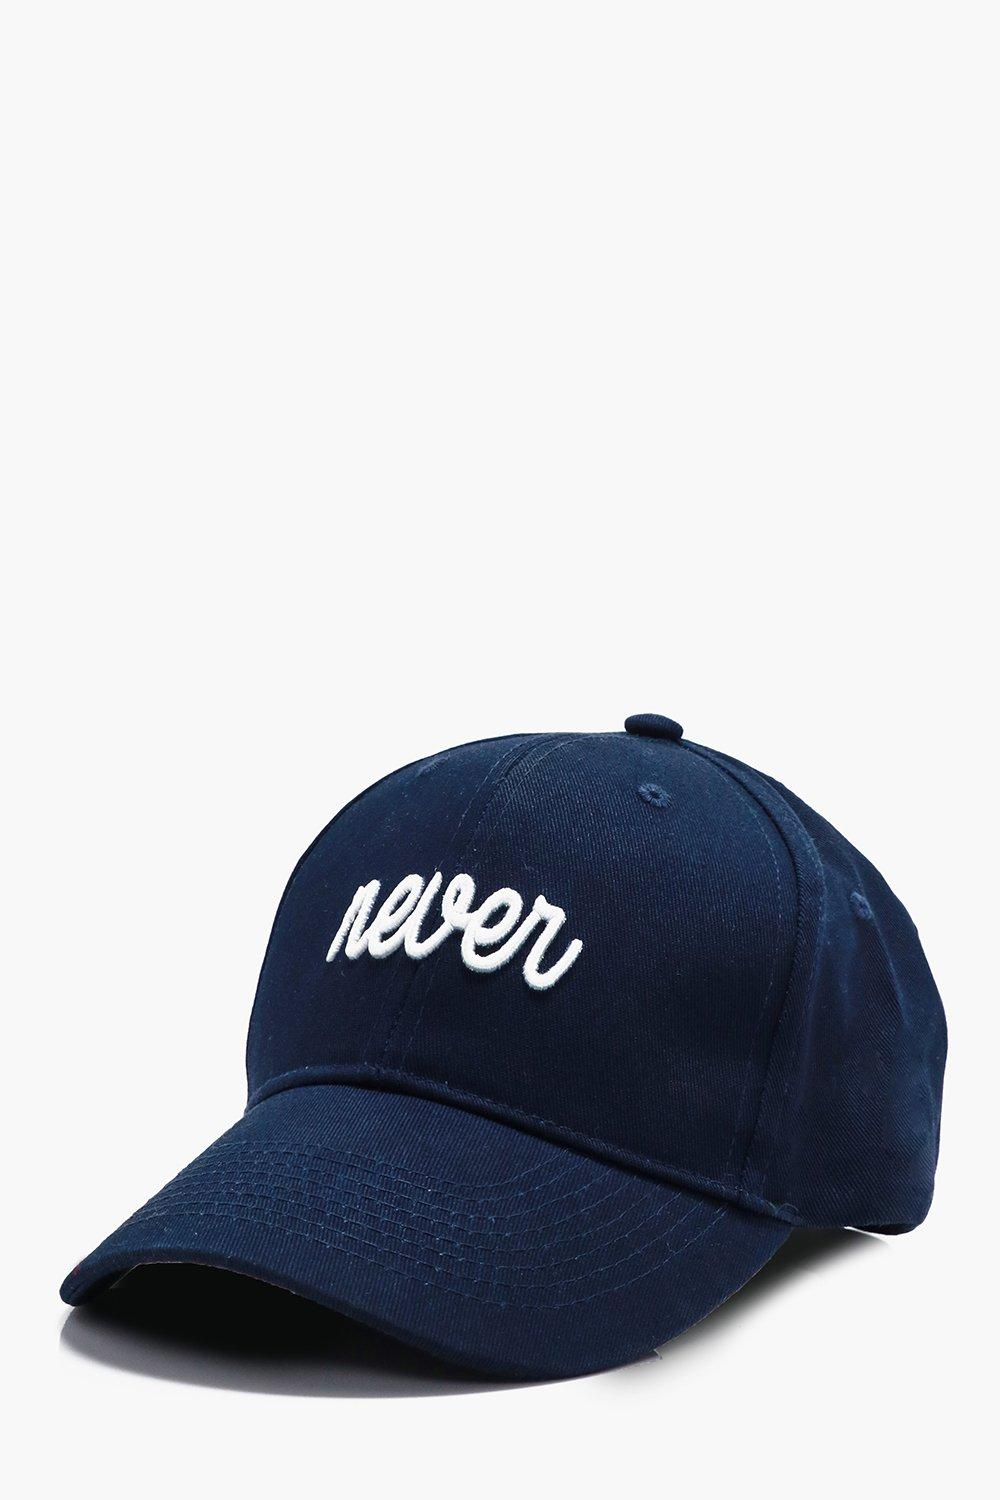 Embroidered Cap - navy - Never Embroidered Cap - n